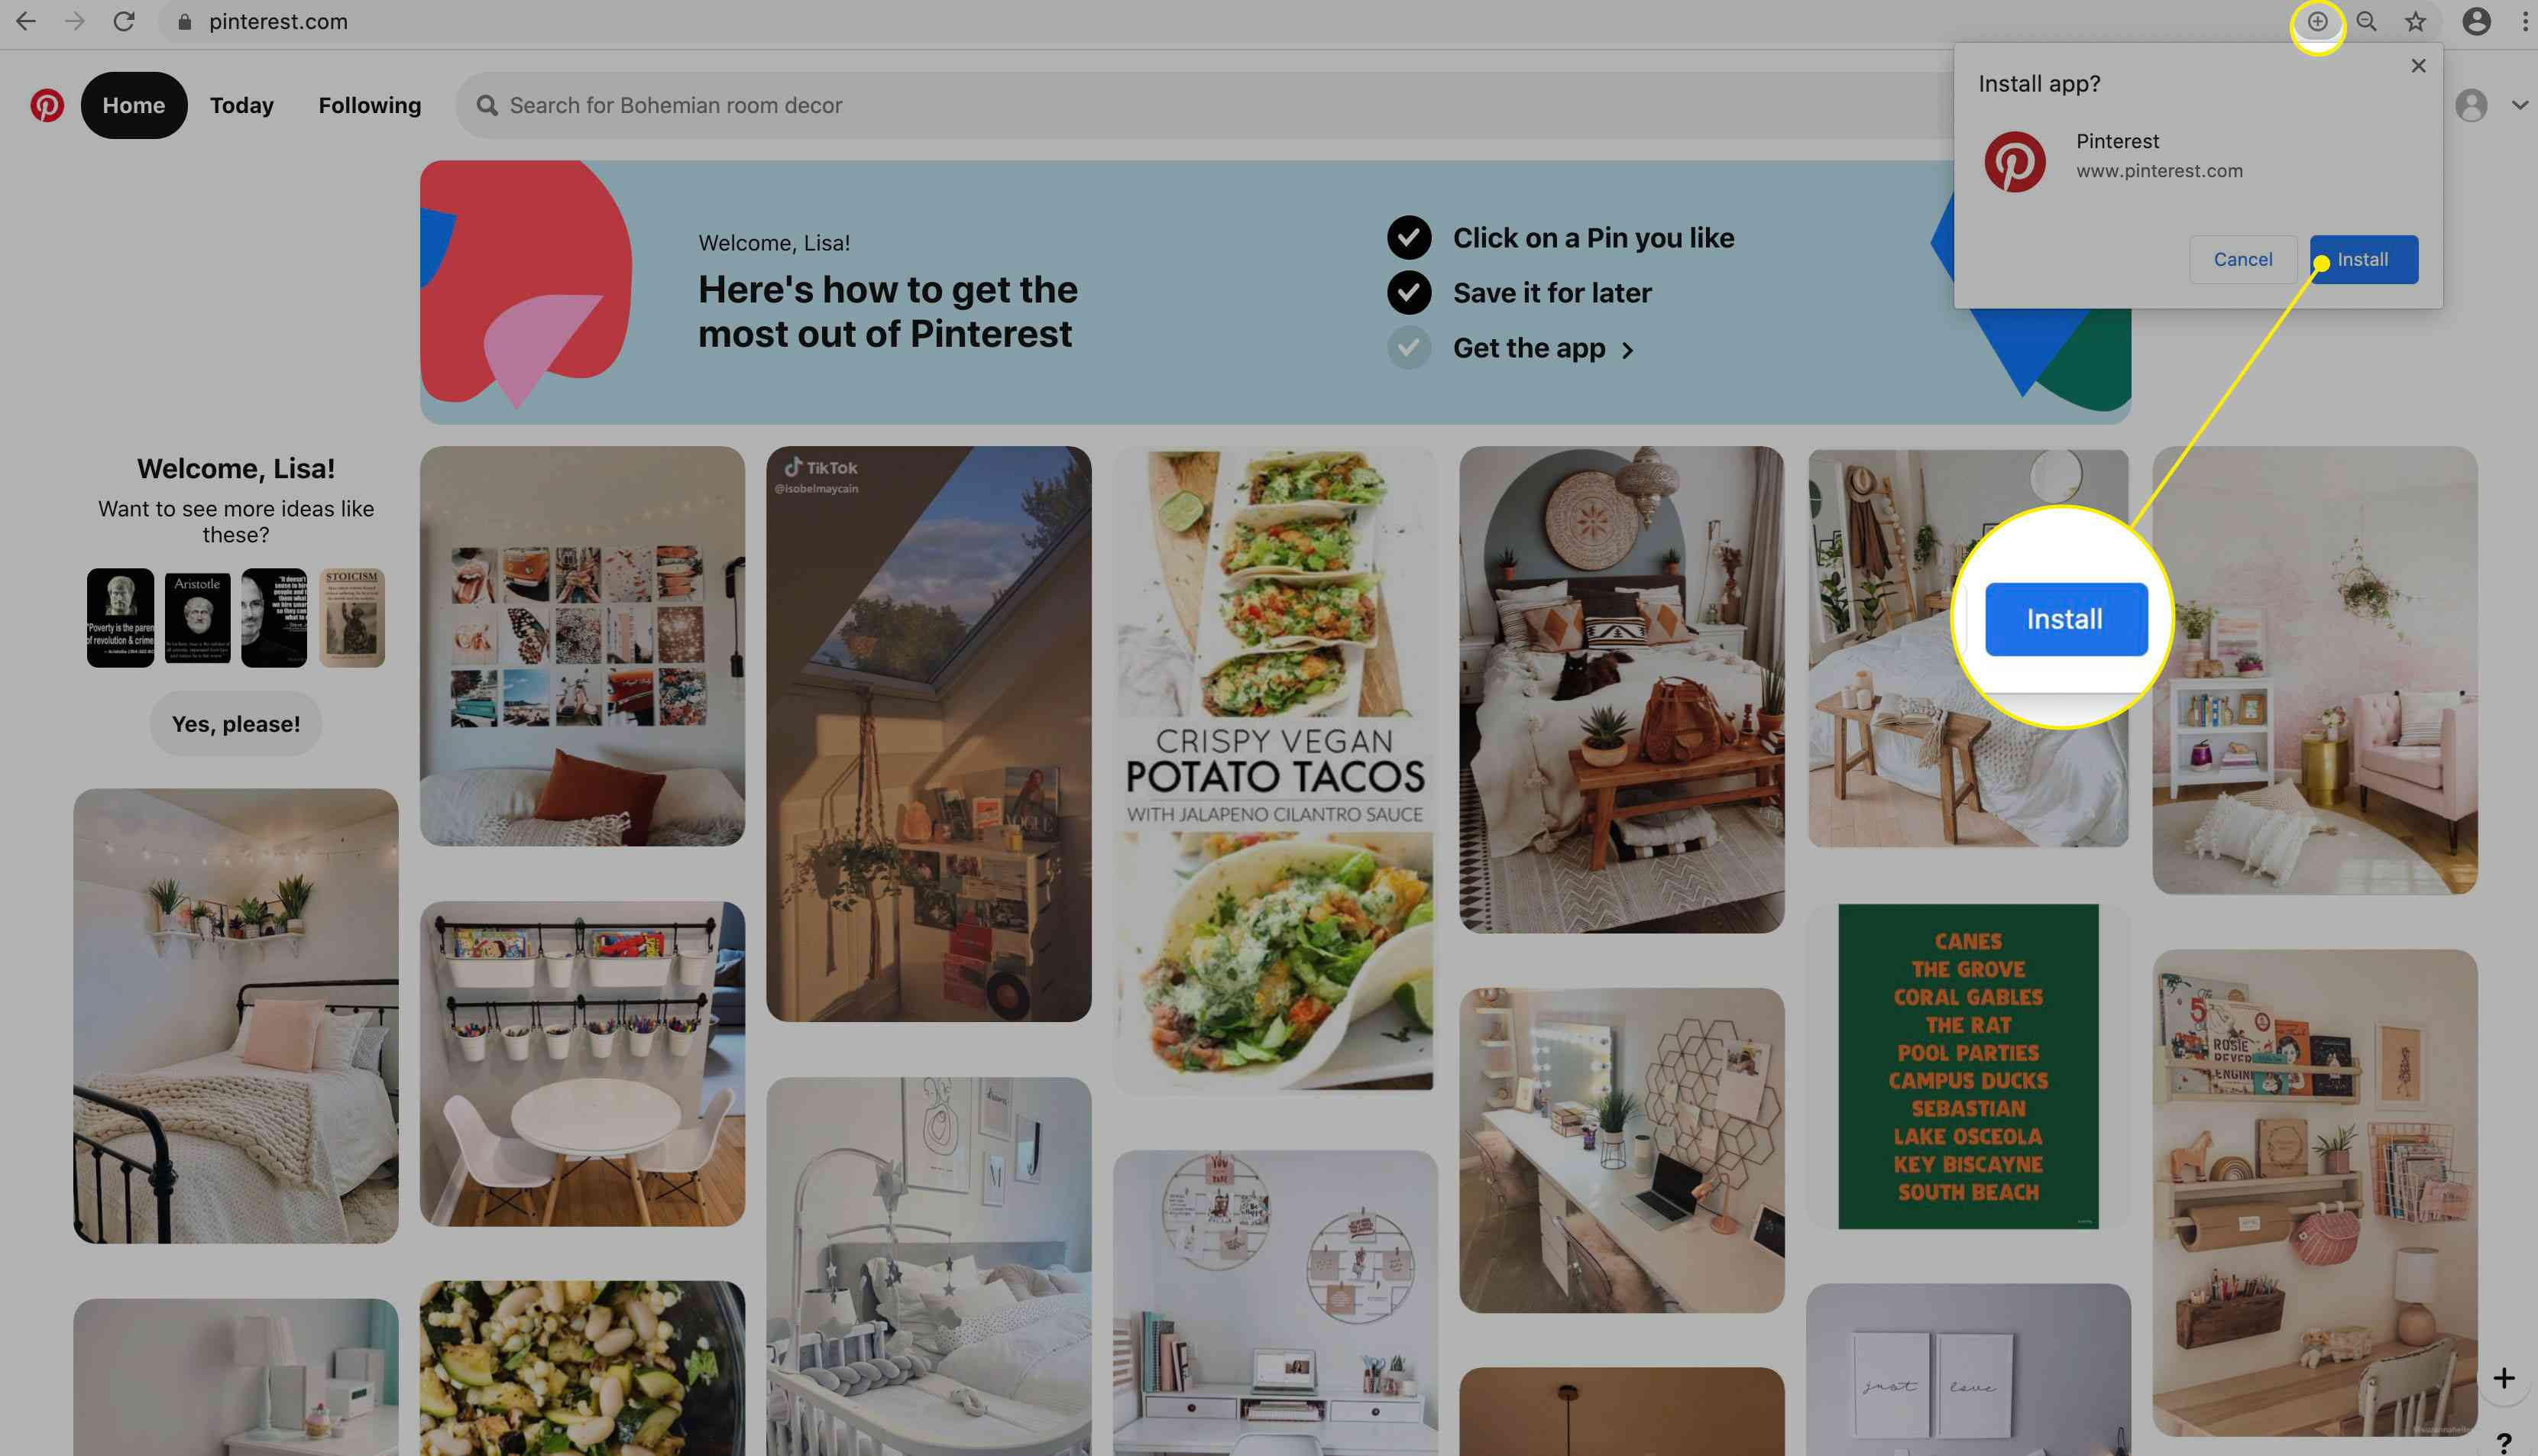 The Install button for the Pinterest browser button